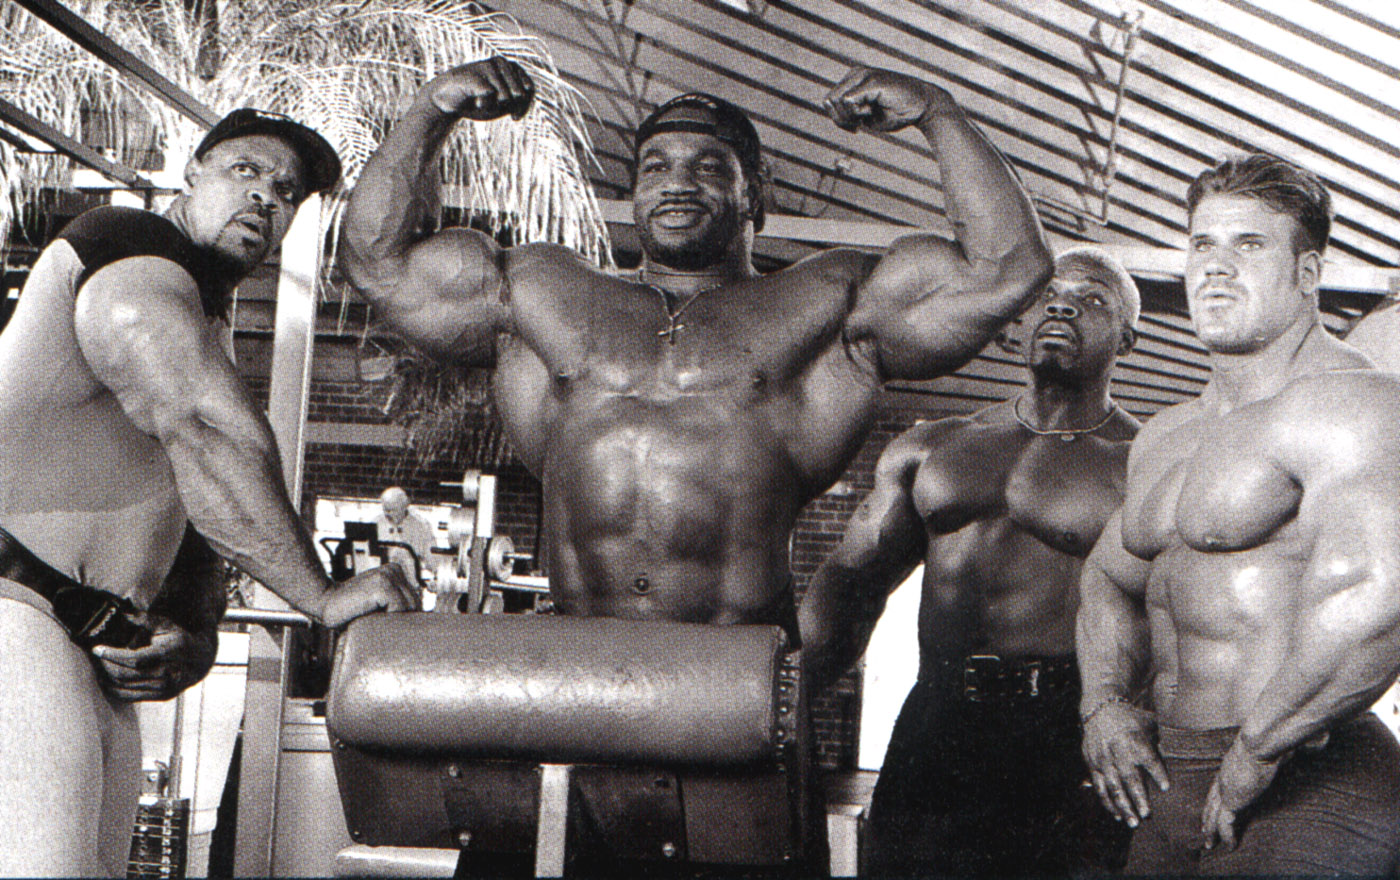 JAY CUTLER, PAUL DILLET, CHRIS CORMIER & MELVIN ANTHONY PHOTO SHOOT - OLD FLEX SCANS